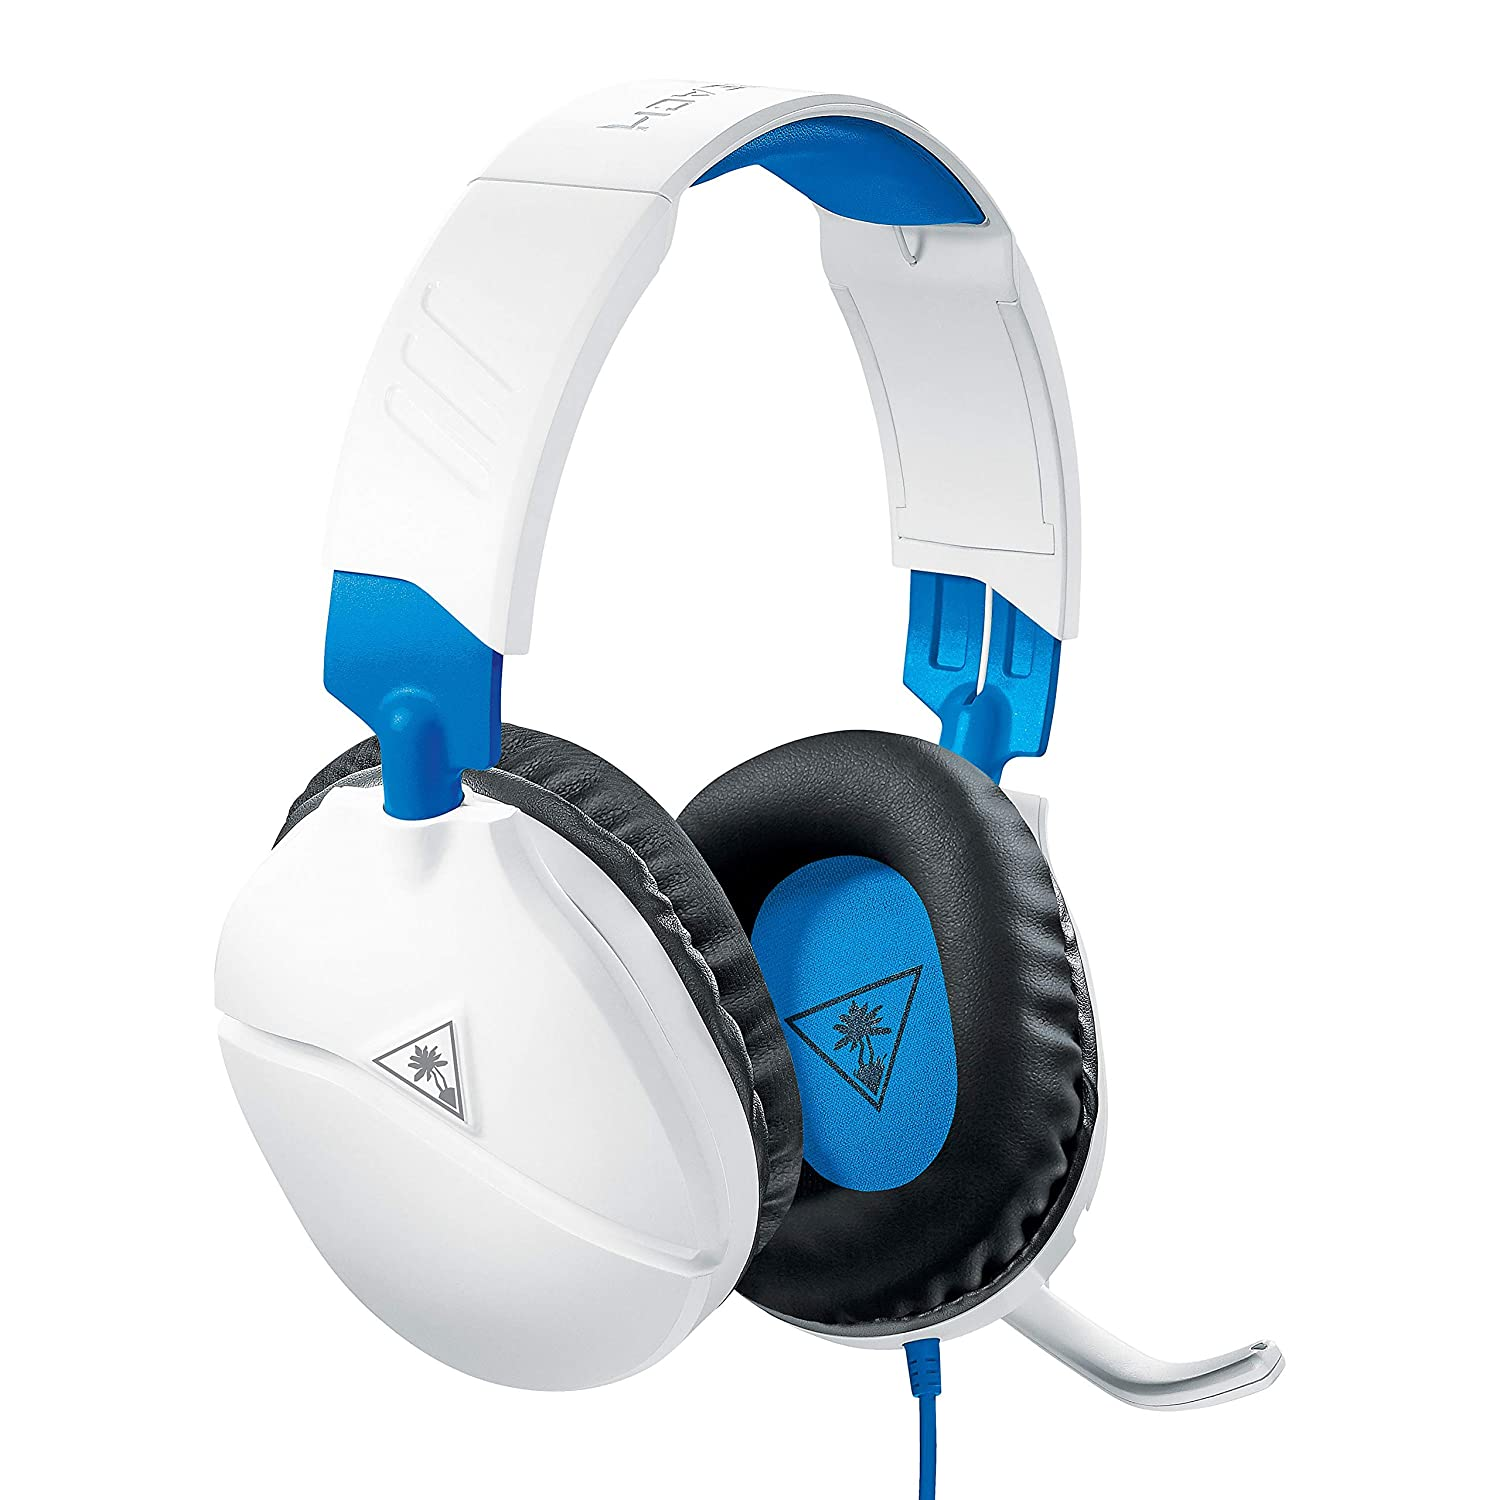 Gaming Headset for PlayStation  Nintendo Switch, PC, and Mobile the colour of this headset is much beautiful and one of the best headset for the nintendo switch and for the gaming of ps4